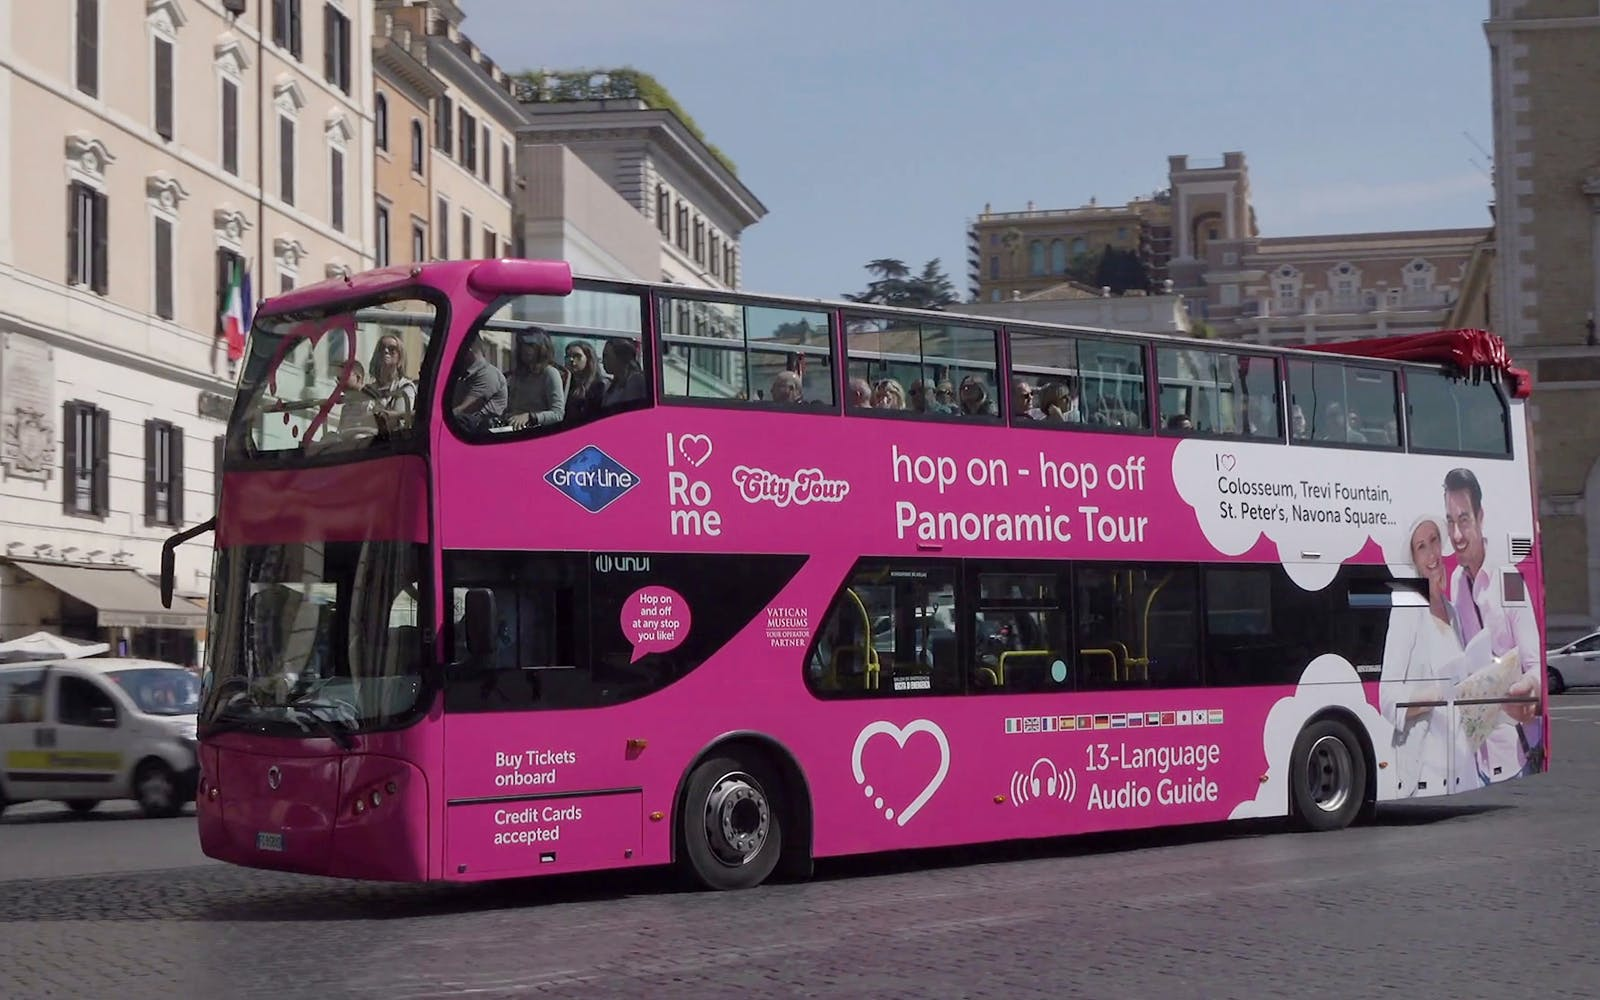 Itinerary. Hop on the bus at any of the stops to start your Edinburgh hop-on, hop-off tour. With 14 stops covering all of main attractions, hop on and off at any of the stops to visit attractions of your choice.